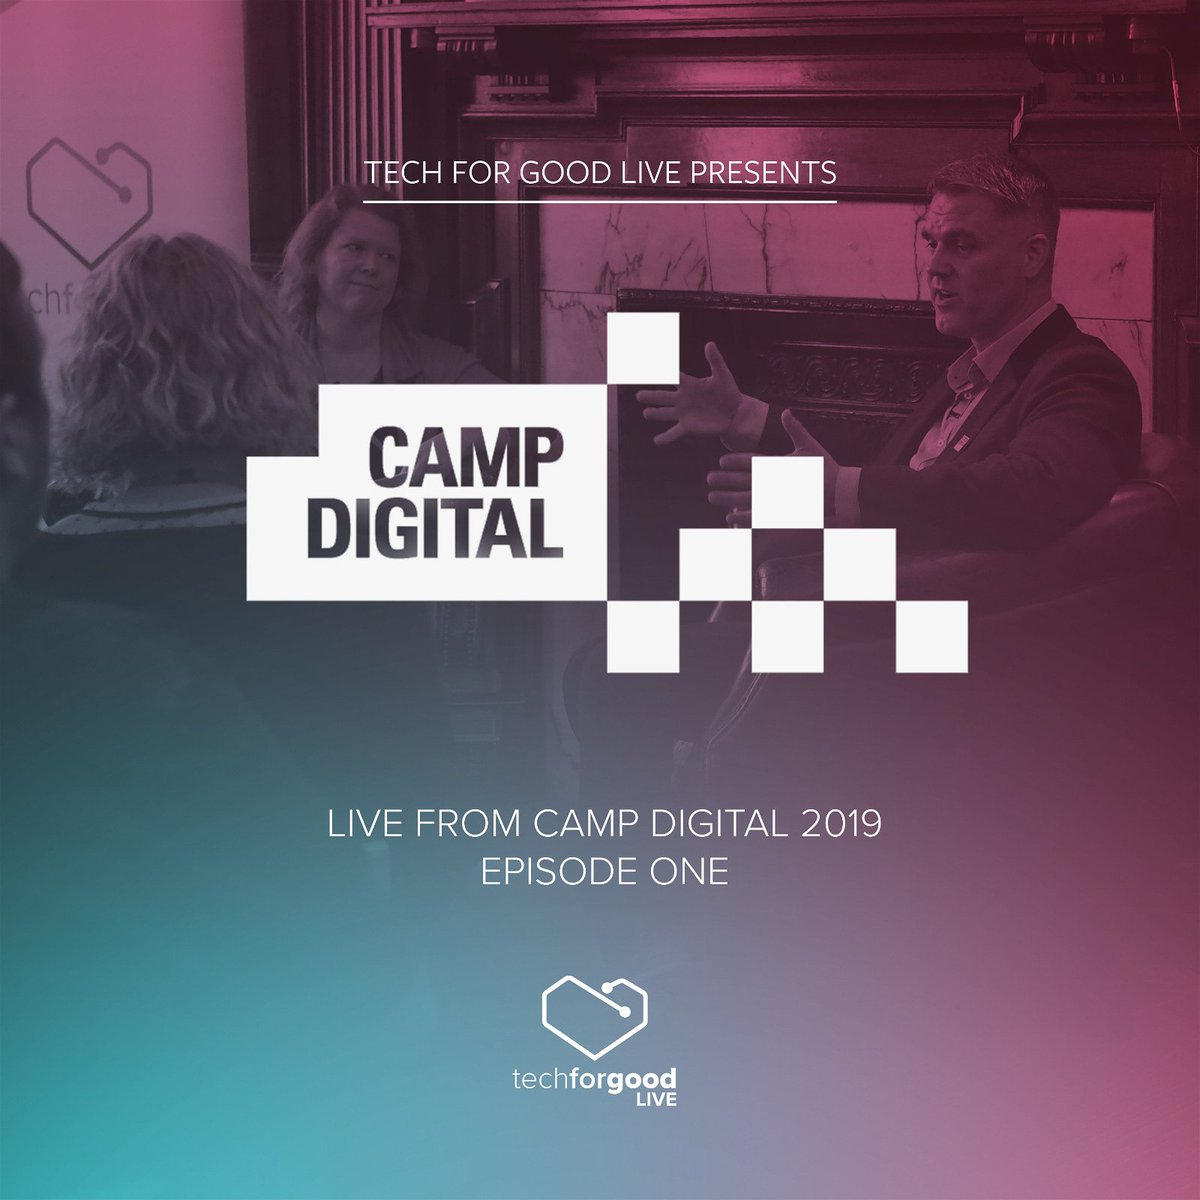 Our first podcast special from #CampDigital is live 🙌! We were joined by @gavinneate founder of @neatebox. Gavin discusses what its like to be a #socialtech entrepreneur and his pedestrian system for those living with #visualimpairment. Listen here 👉 apple.co/2xcBDWJ